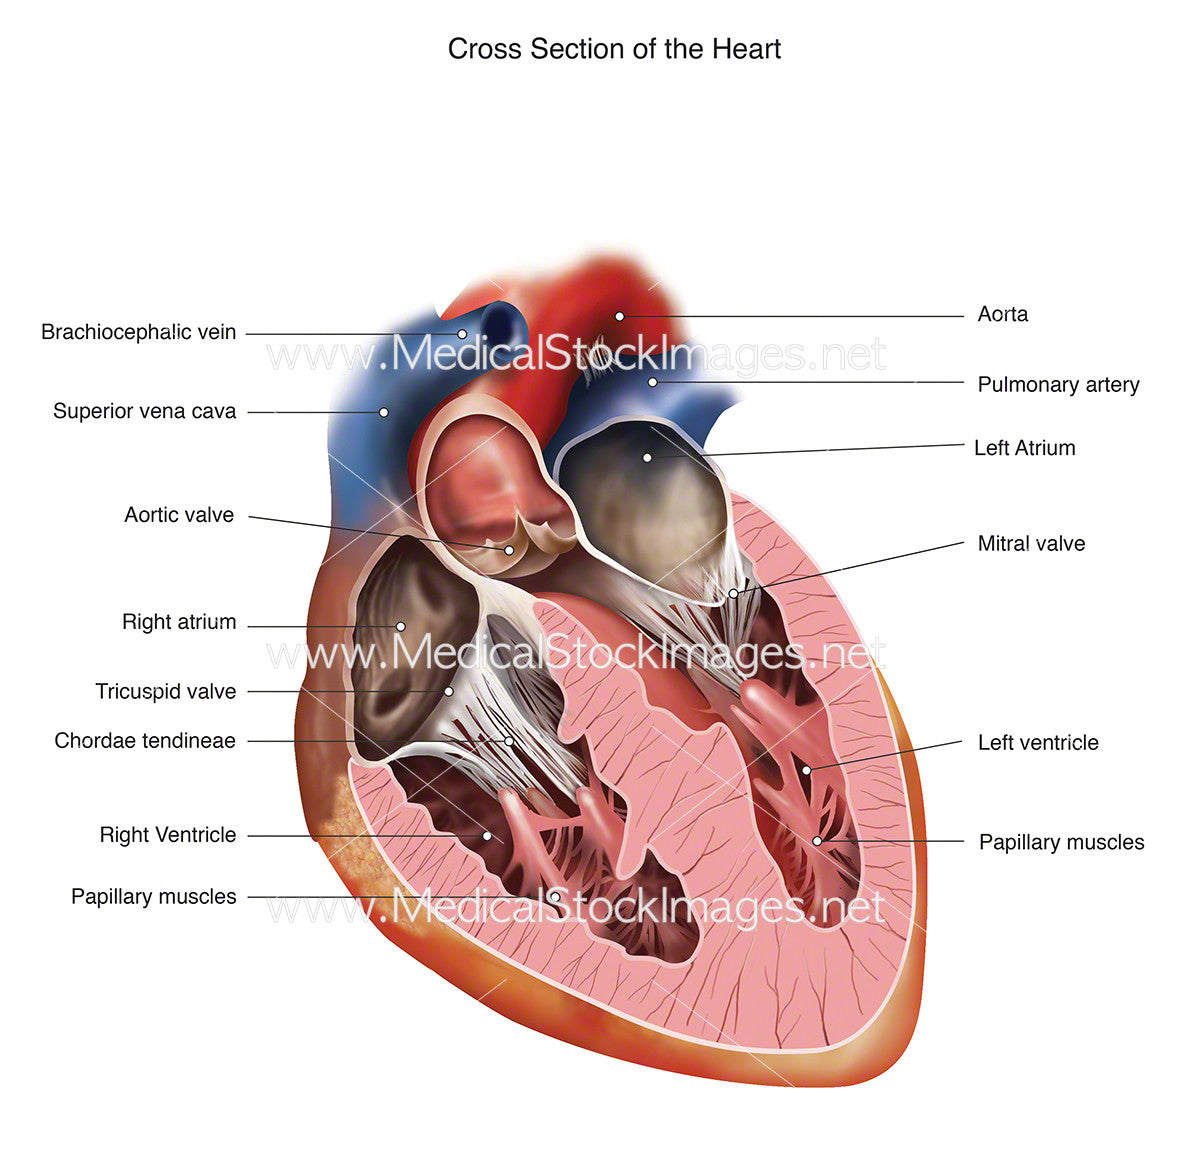 Heart Cross Section Labelled Medical Stock Images Company